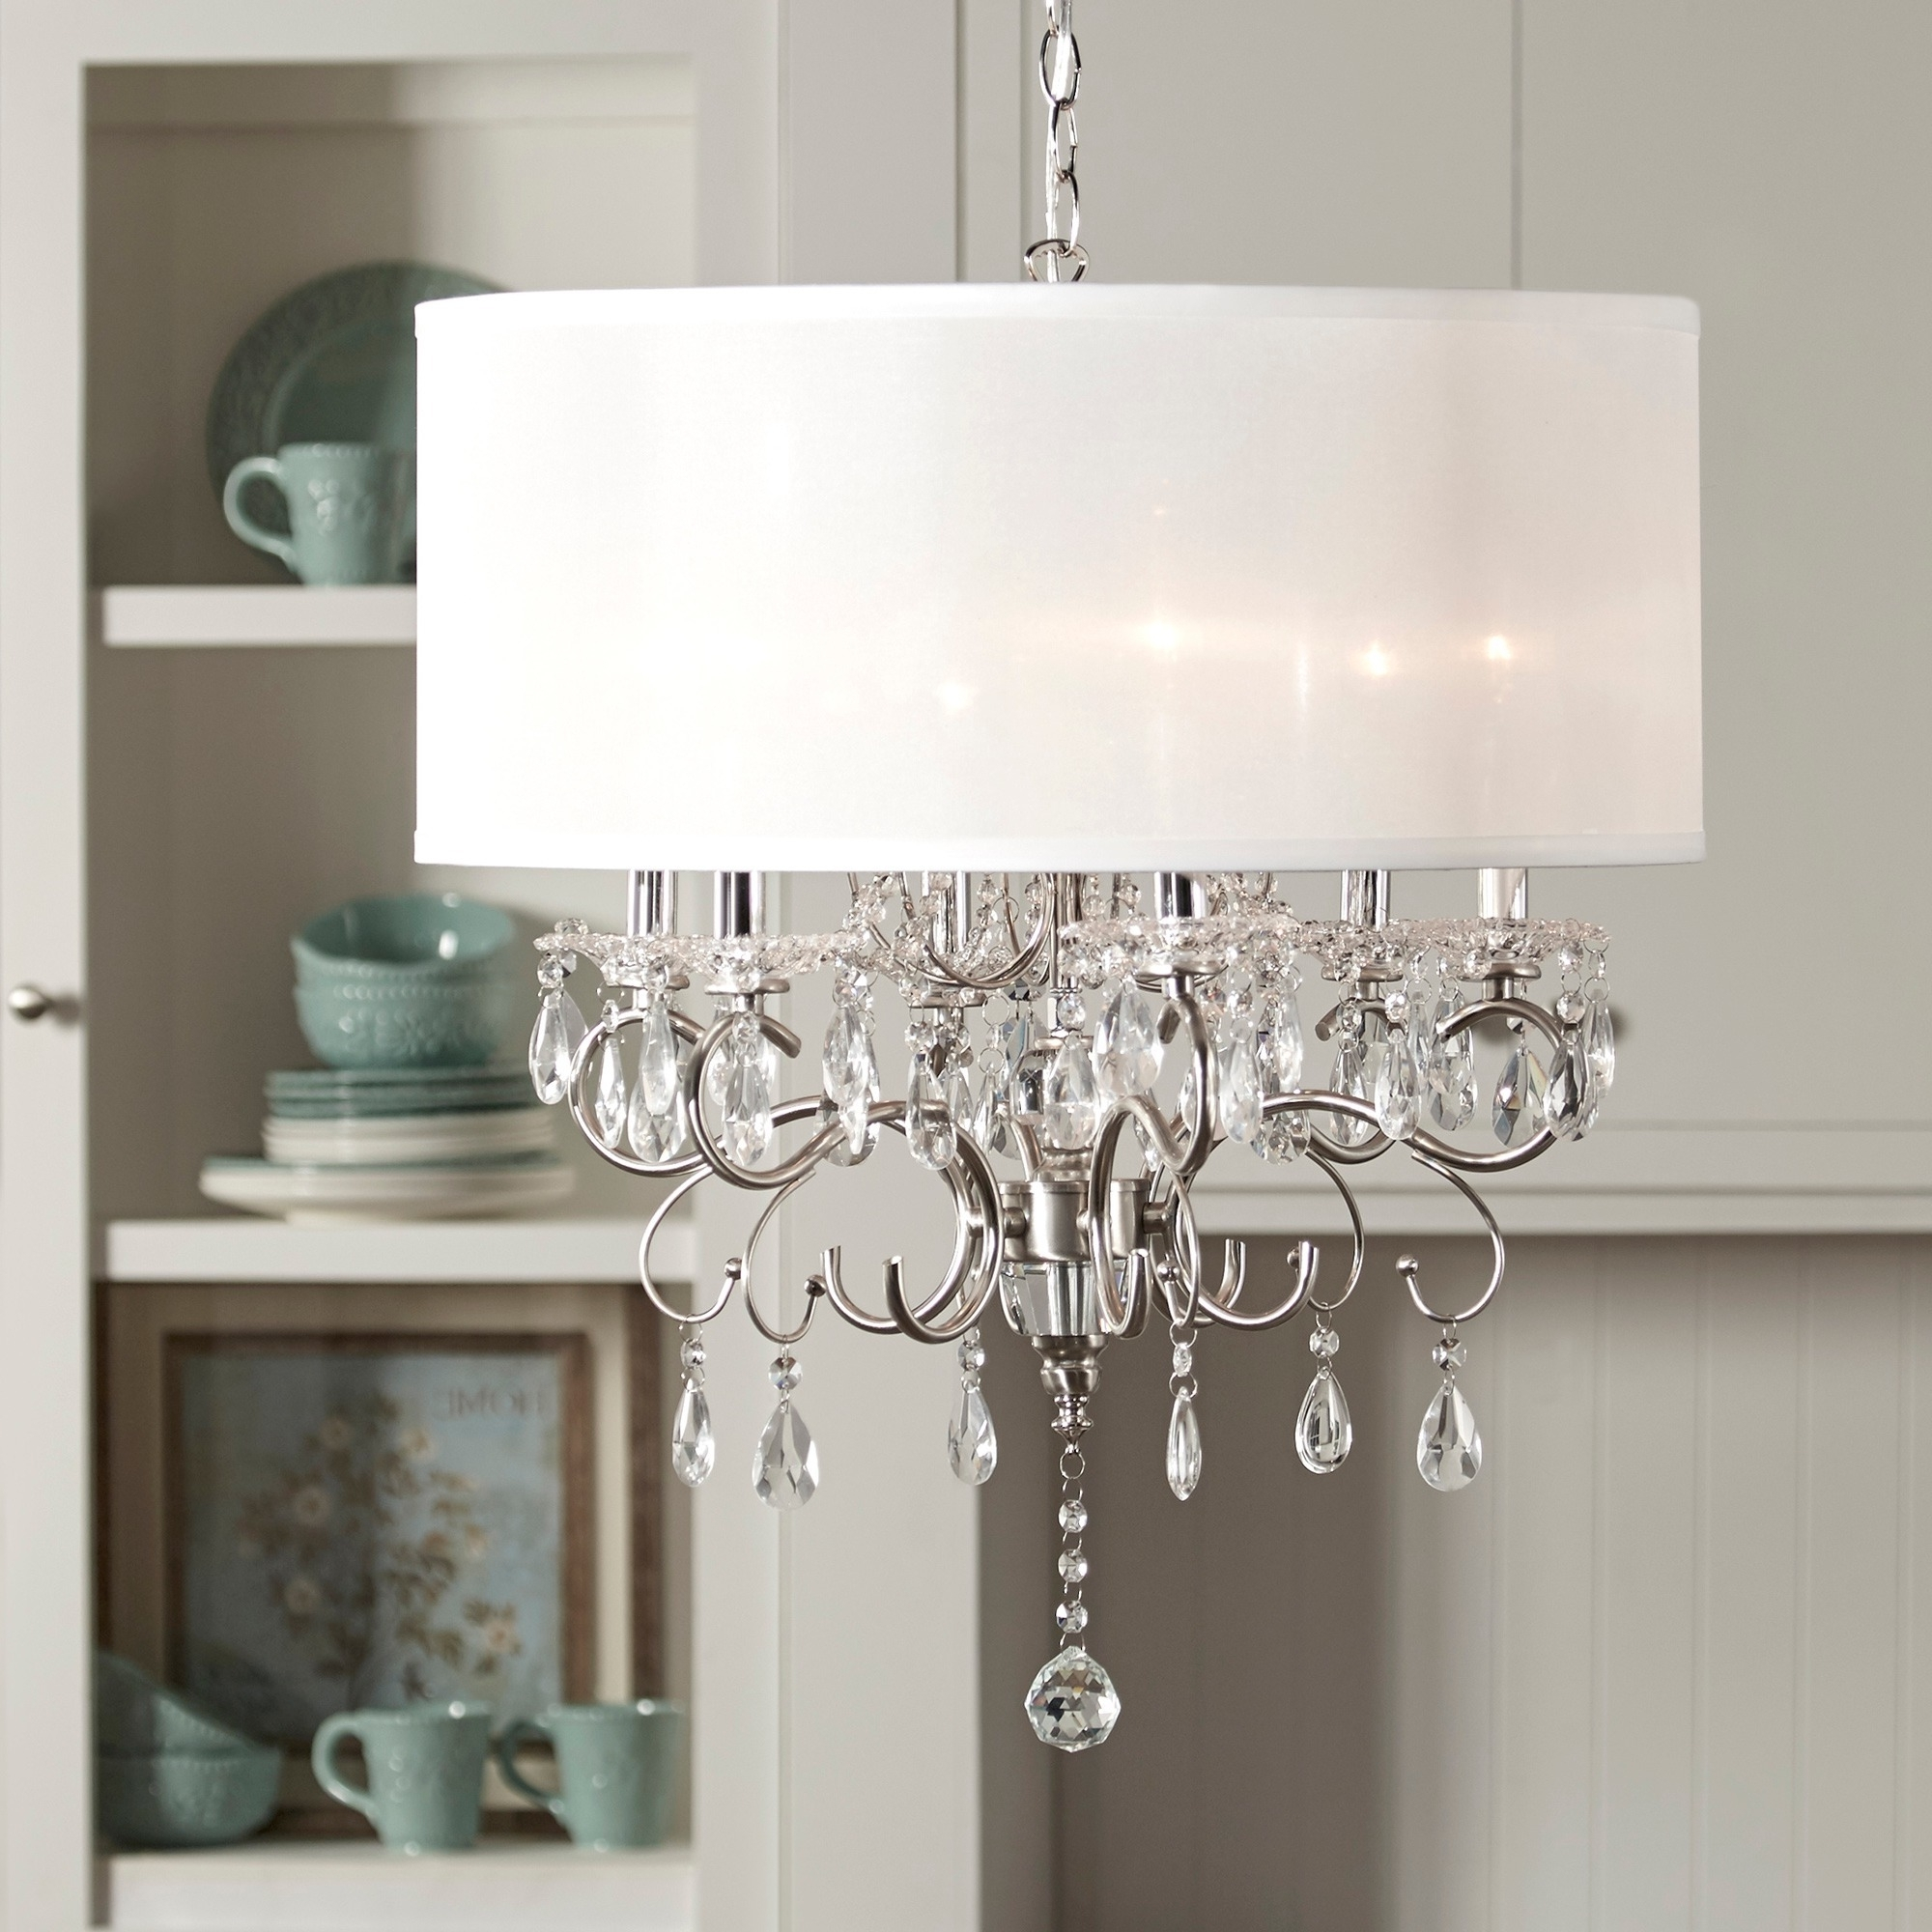 Excellent Light Shades Of Grey Html Purple Names Shade Blue Regarding Latest Lampshade Chandeliers (Gallery 10 of 15)